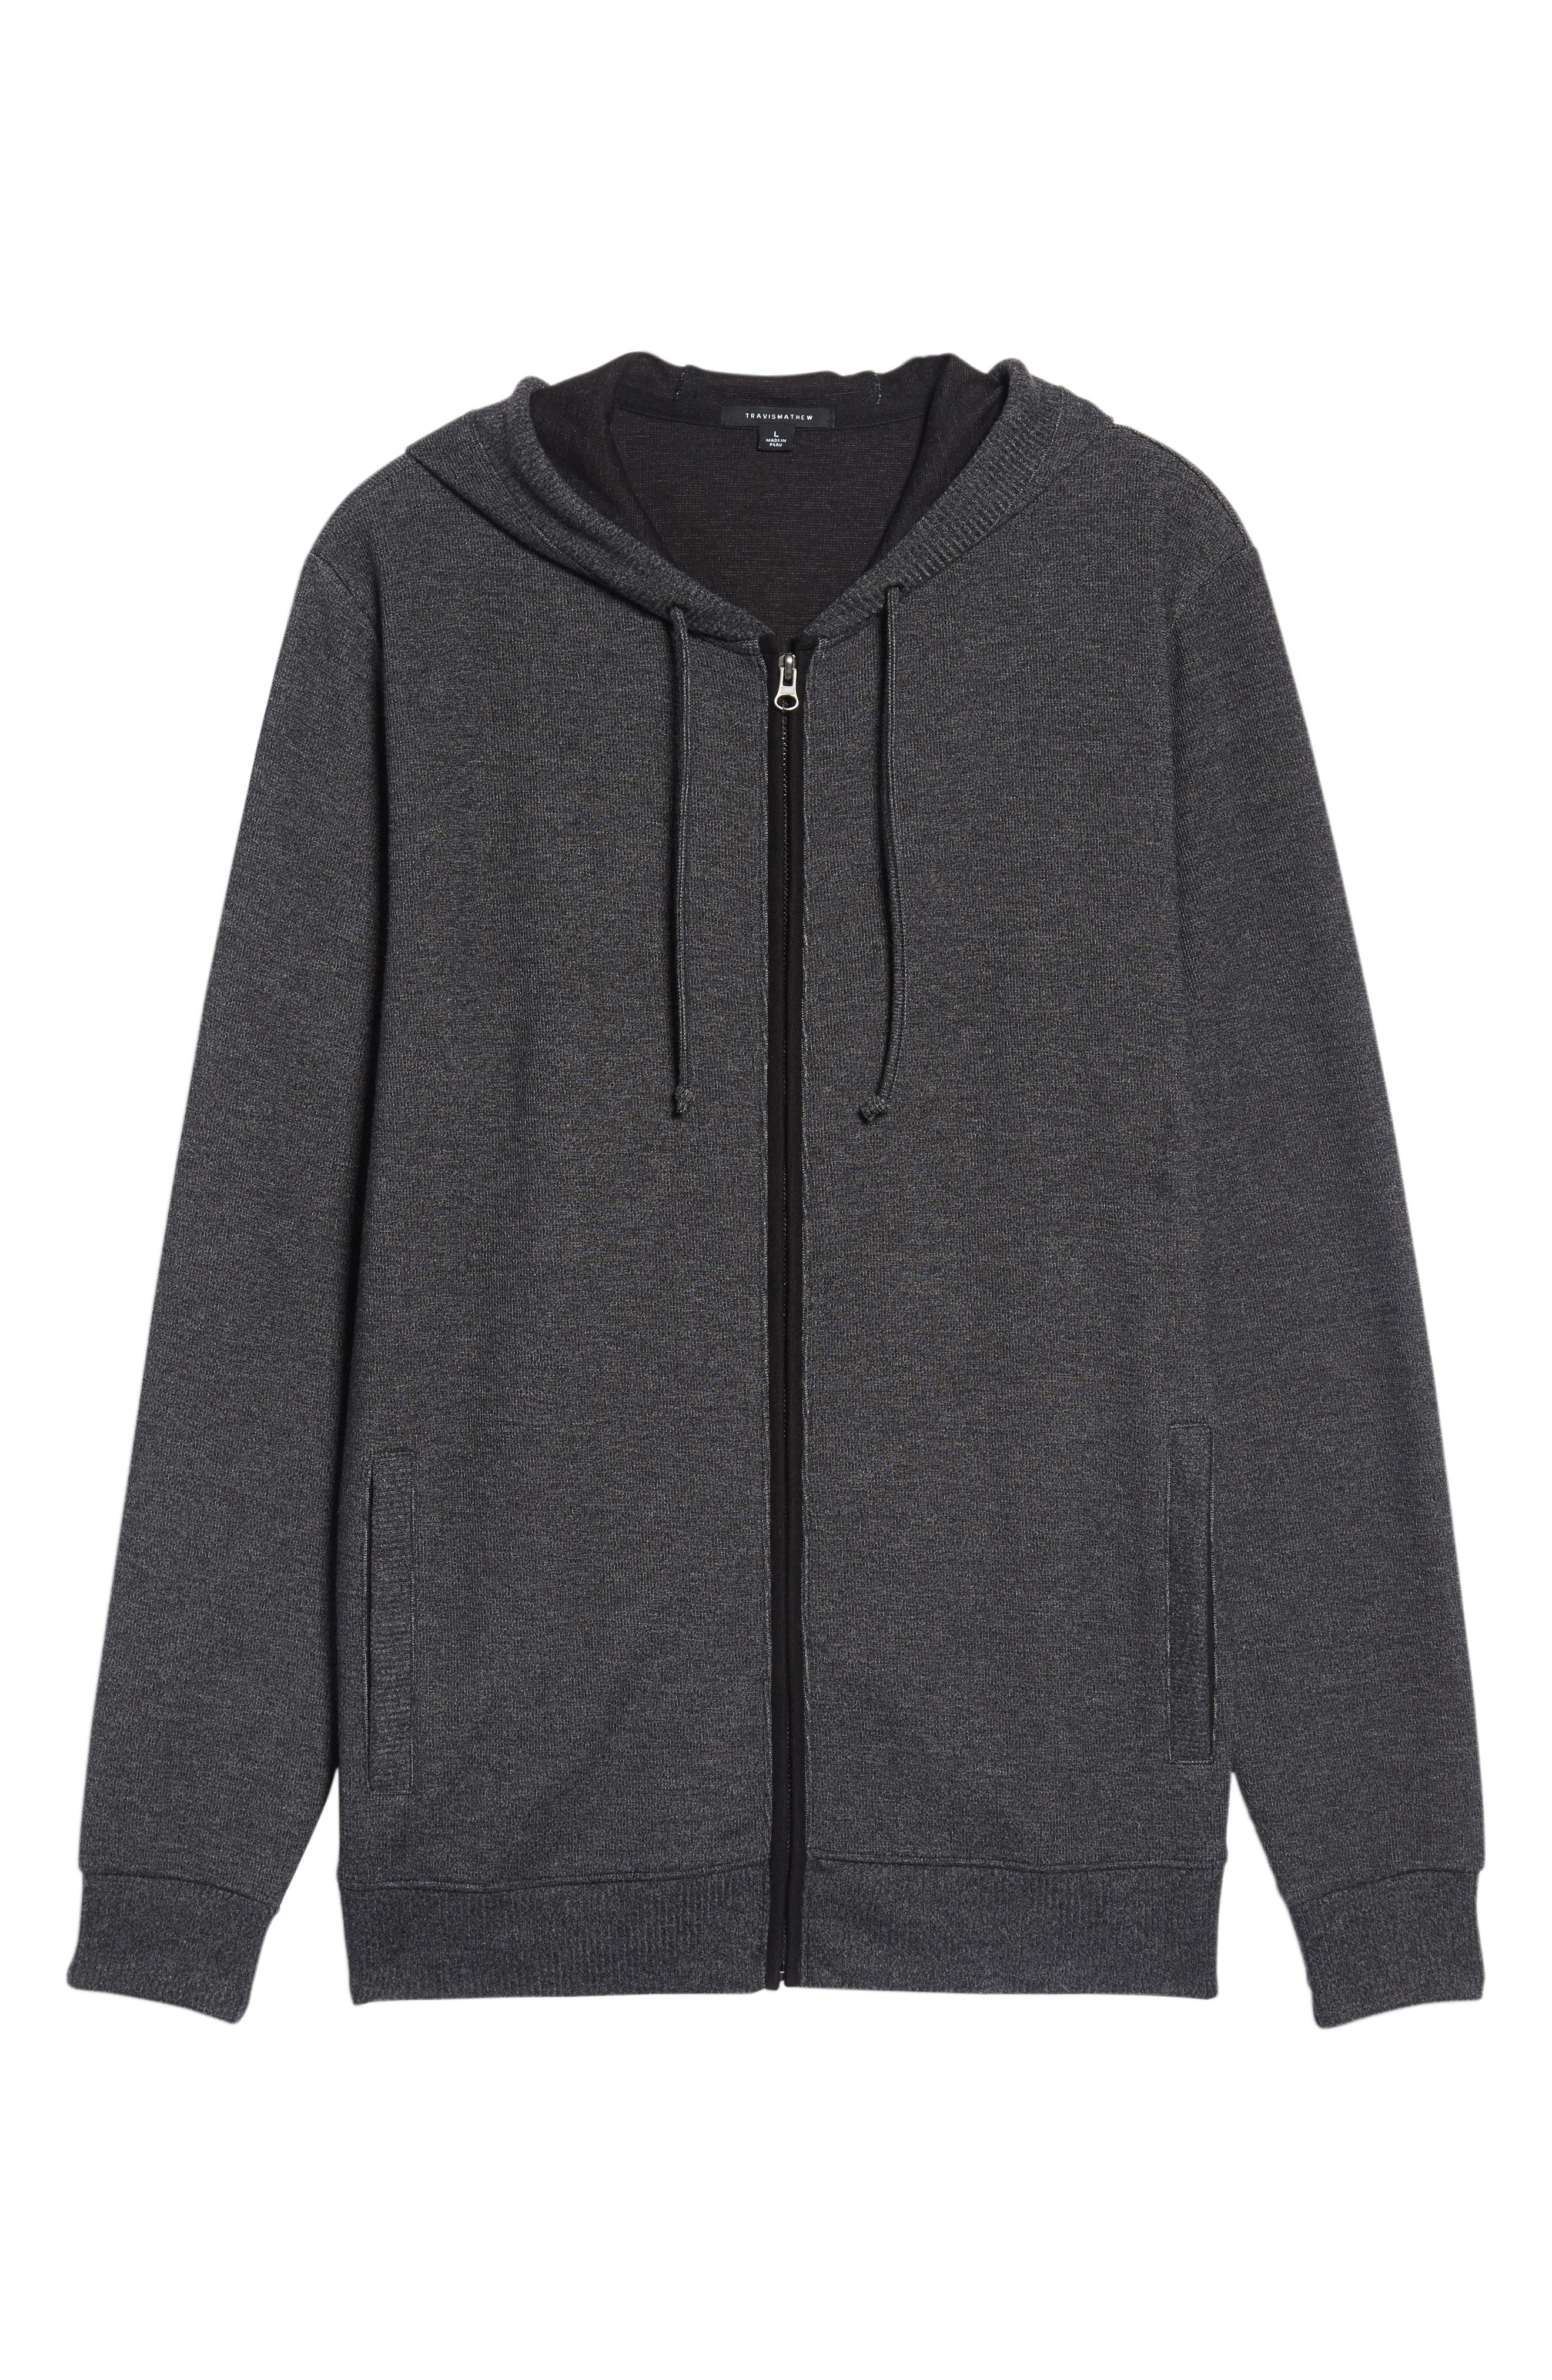 Snare Zip Front Hooded Cardigan,                             Alternate thumbnail 6, color,                             001